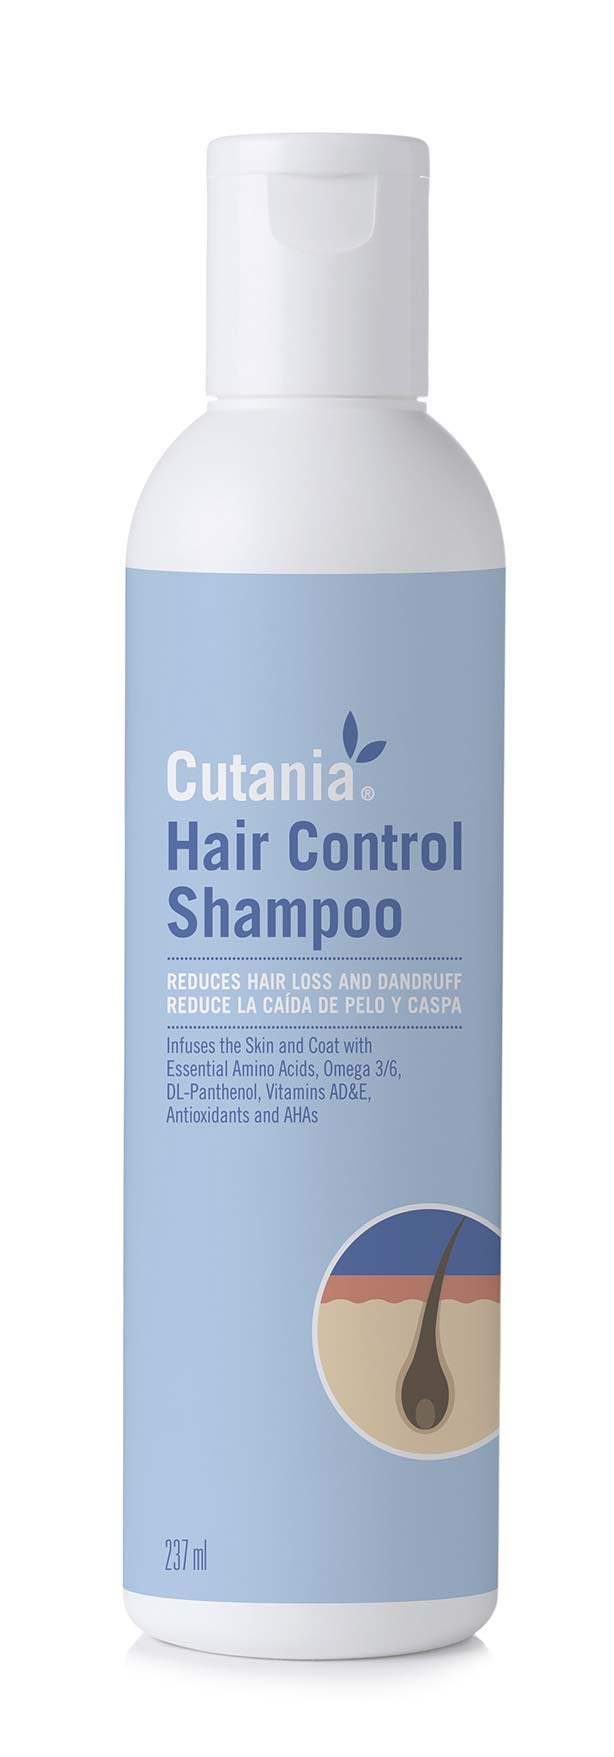 CUTANIA HAIR CONTROL SHAMPOO 237 ML